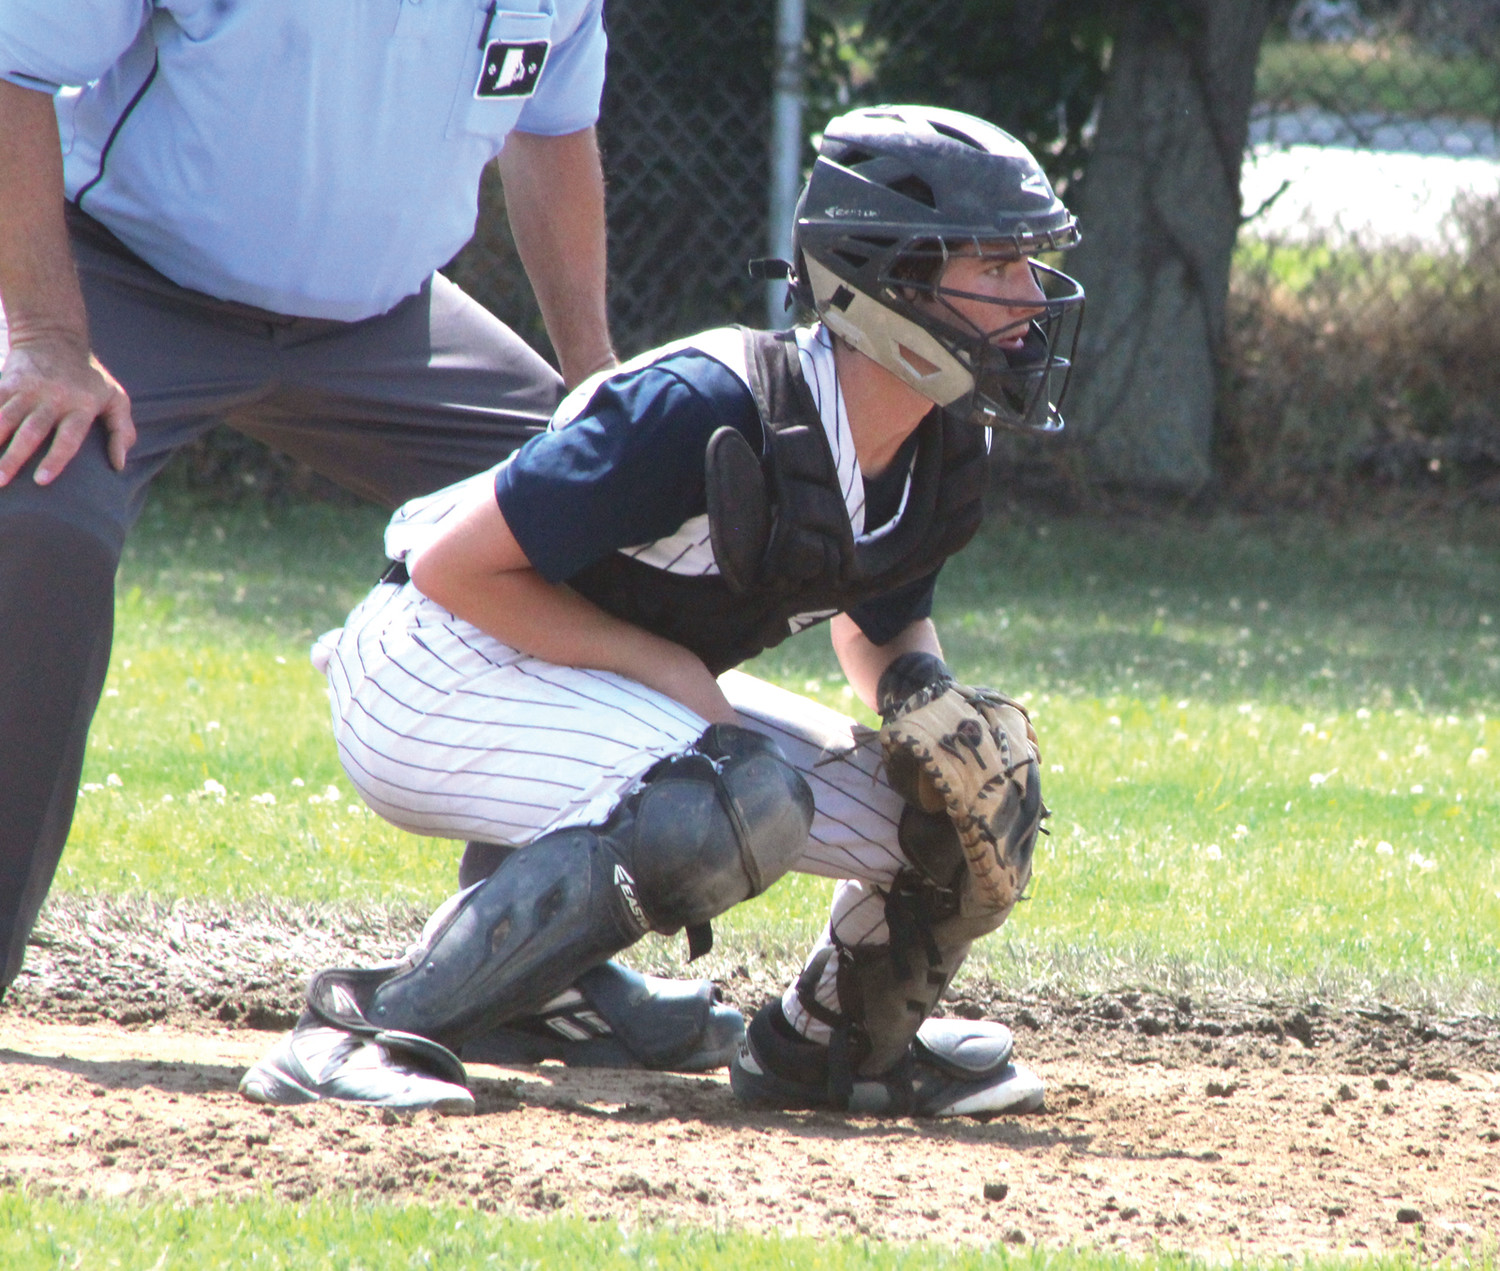 Catcher Jeremiah Mullane throws down a sign.